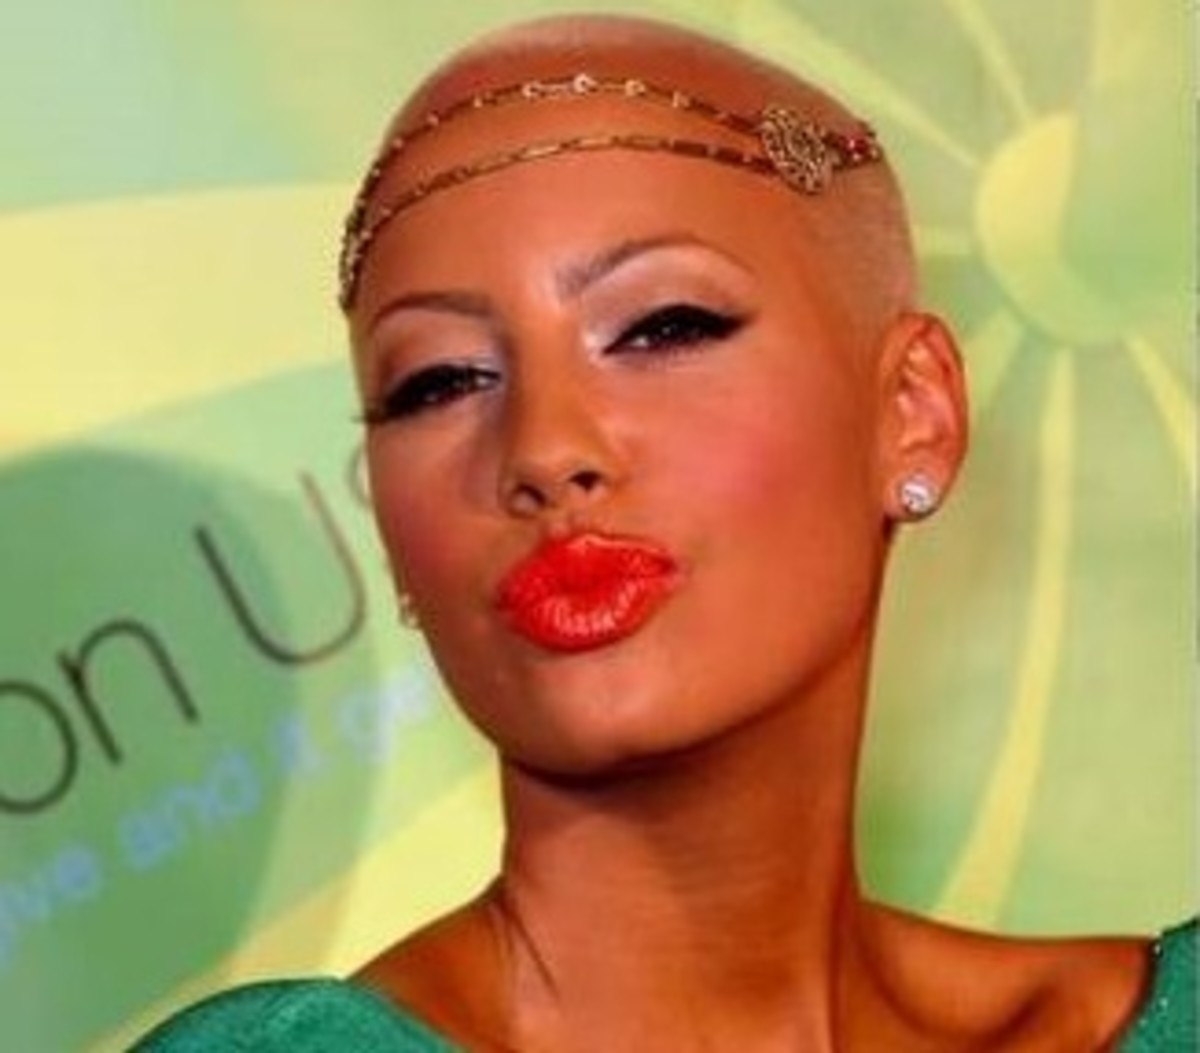 Amber Rose puckering up for a kiss